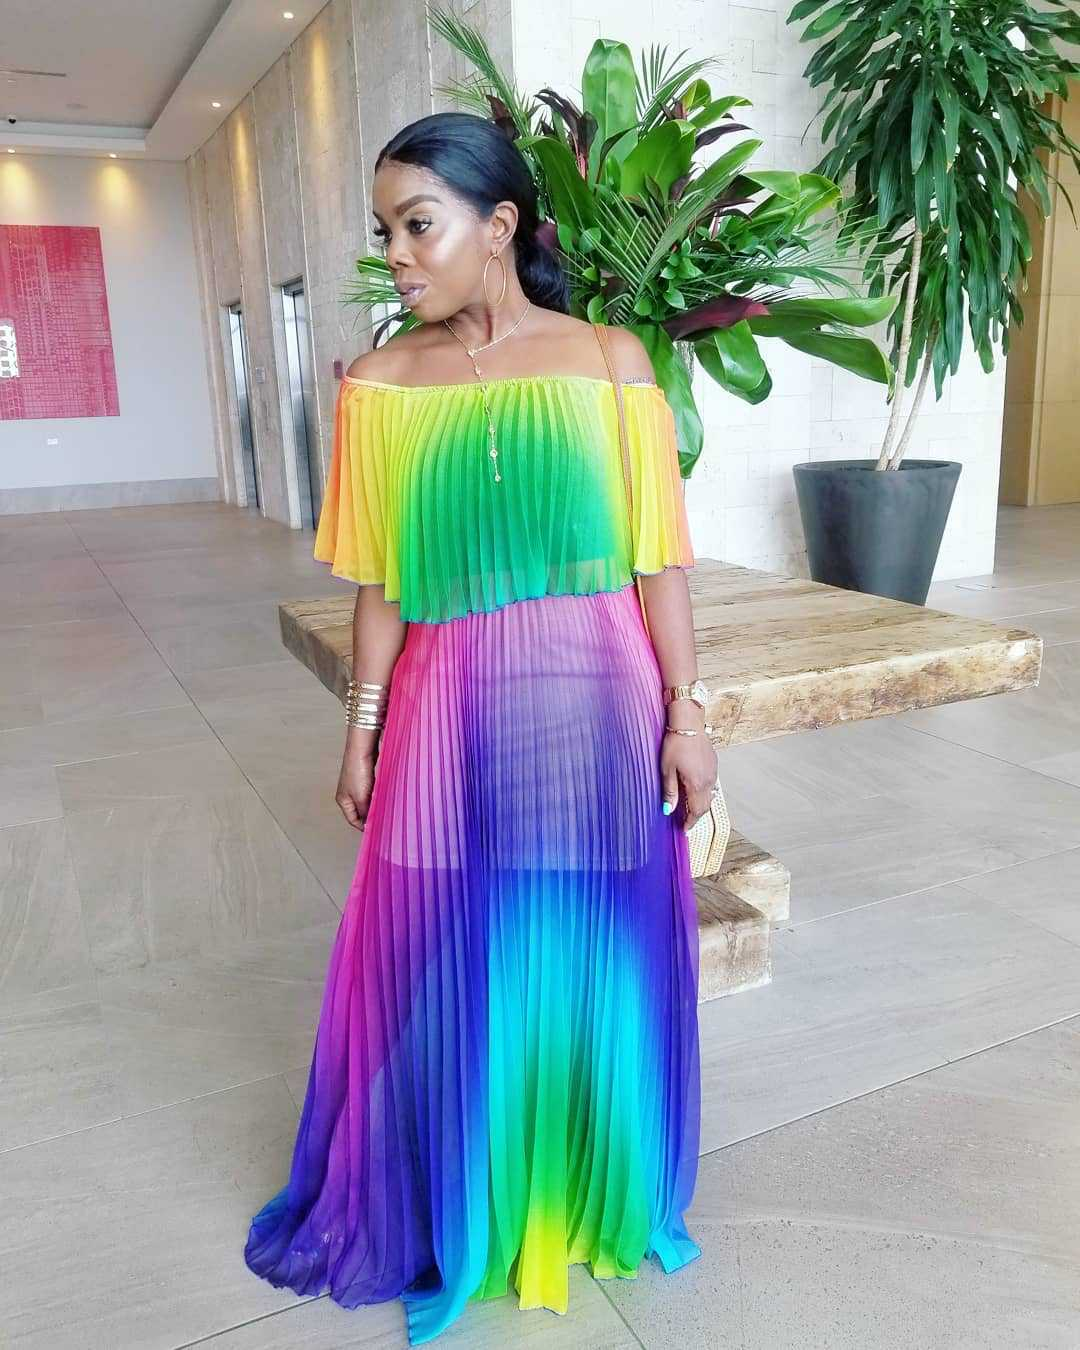 Off Shoulder Rainbow Color Elegant Women Dress Chiffon Summer Maxi Dress A-line Floor Length Femme Pleated Dress 2019 Vestidos